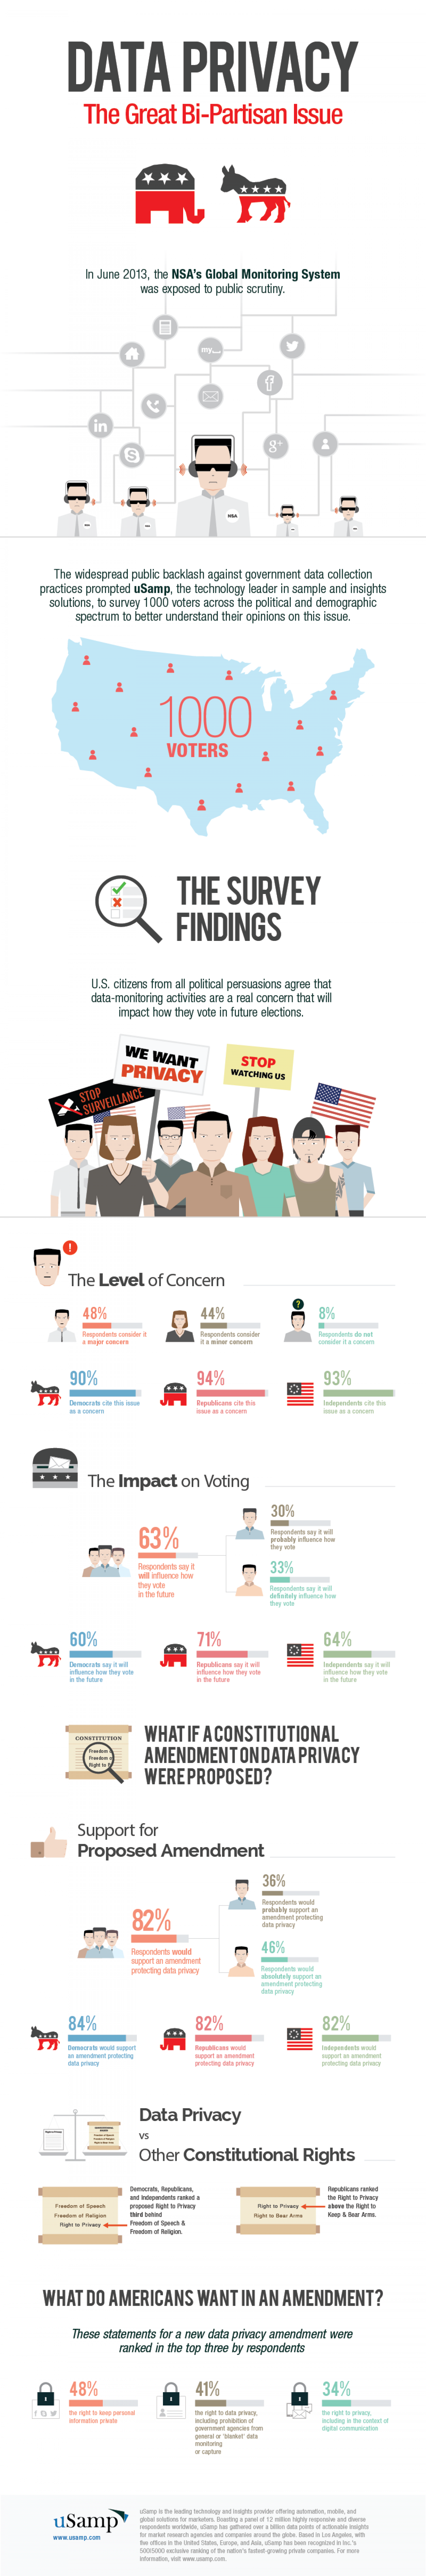 Data Privacy:The Great Bi Partisan Issue Infographic